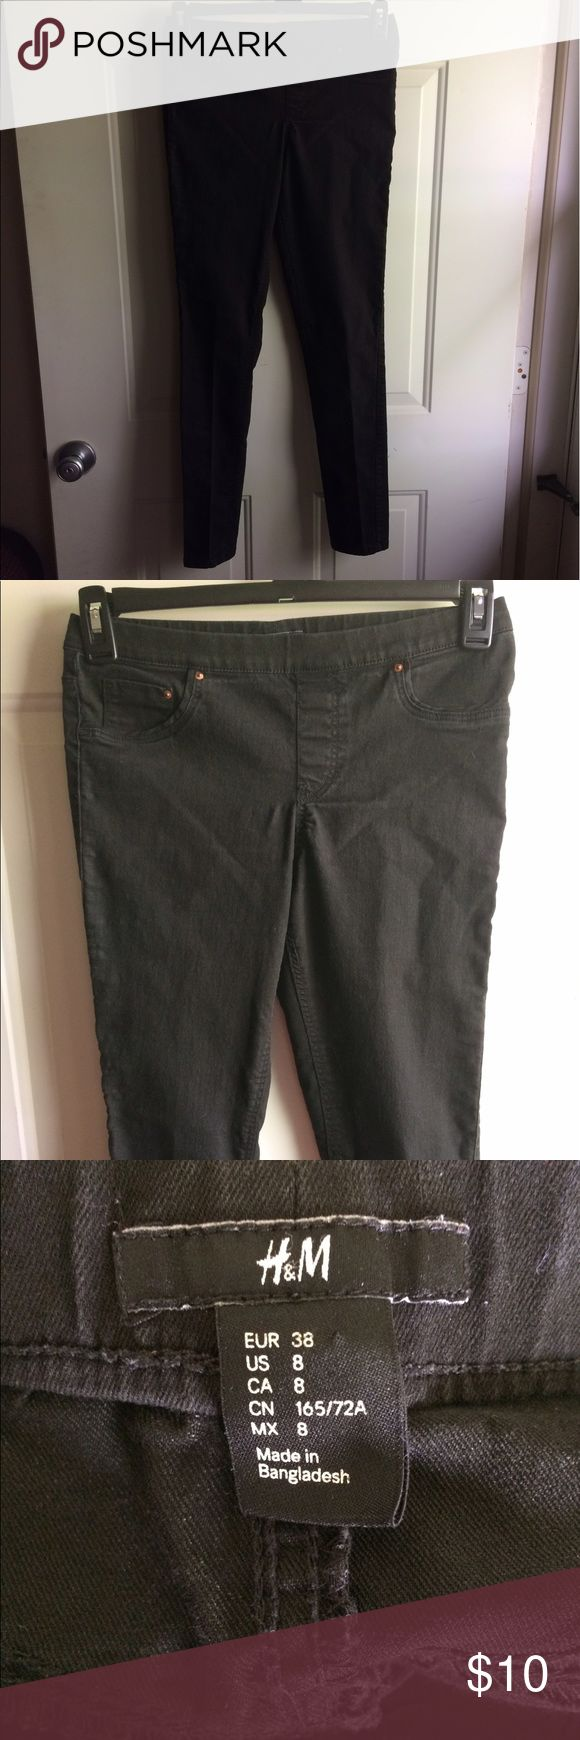 Size 8 H&M Jeans Size 8 H&M jeans. Have no zipper or button. They are stretchy. Smoke free home H&M Jeans Skinny